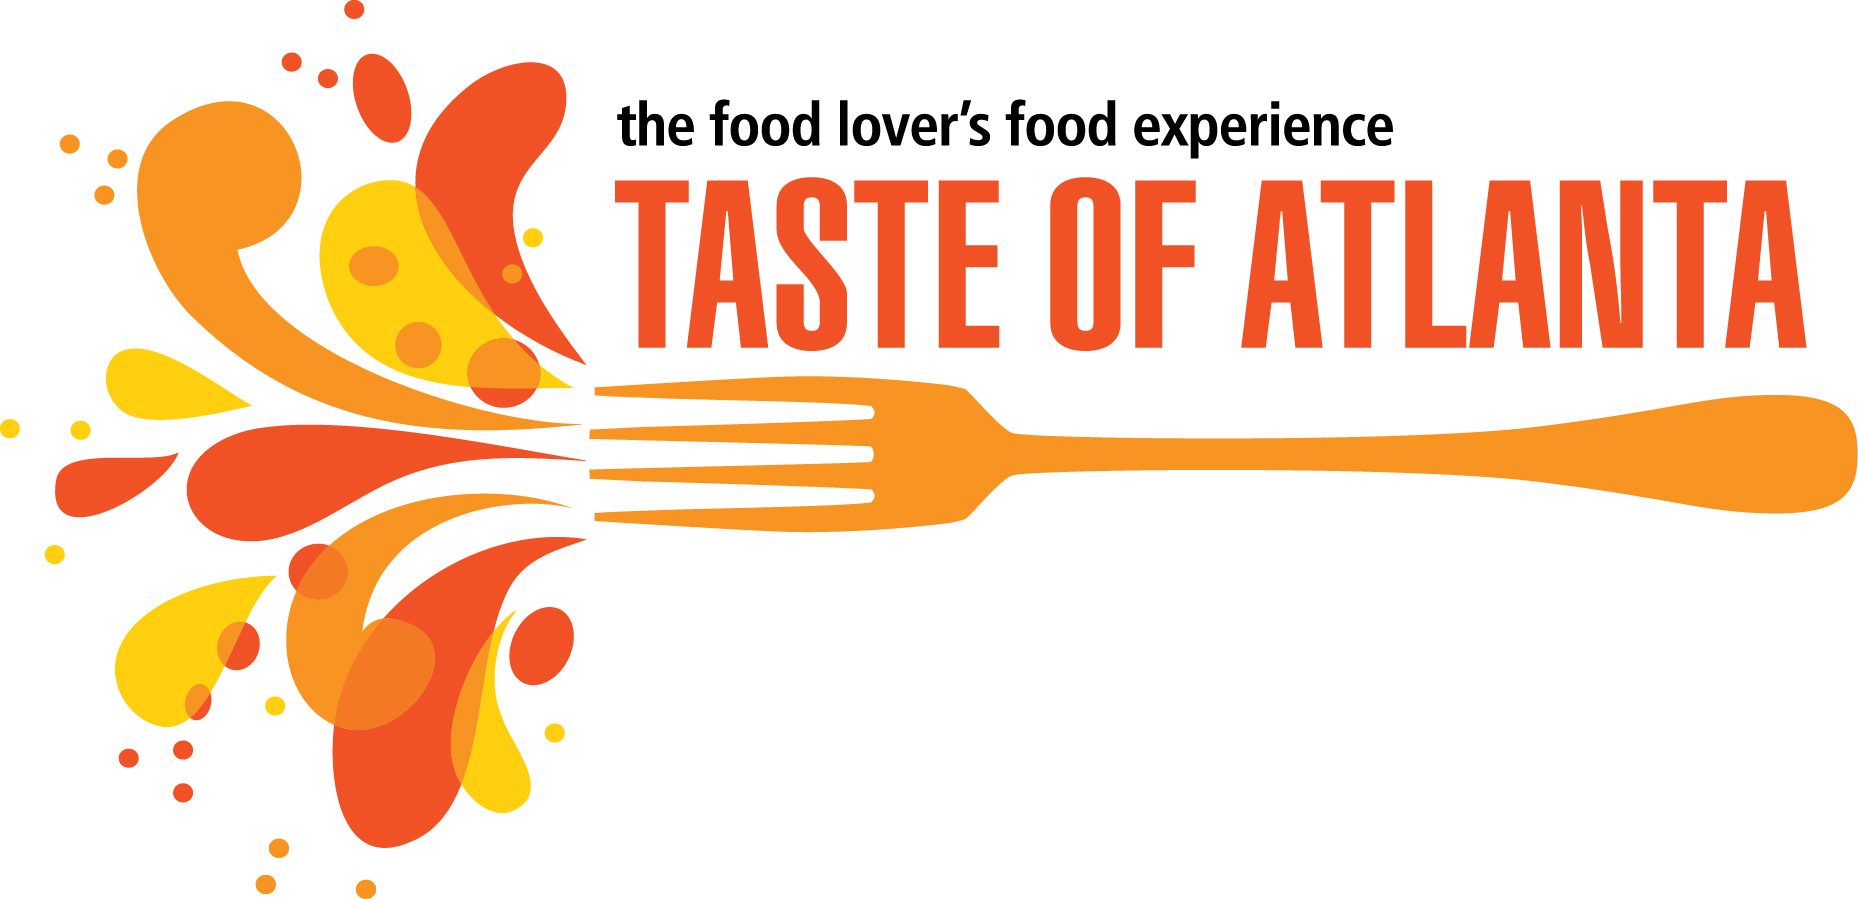 CouponVario found the latest and largest collection of derpychap.ml coupons, promo codes and deals FAMILY discount on @TasteofAtlanta general admission or VIP tix, ends 6pm 10/24, discount code: $5 OFF on Taste of Atlanta Festival Tickets ends tonight at midnight. Use promo code